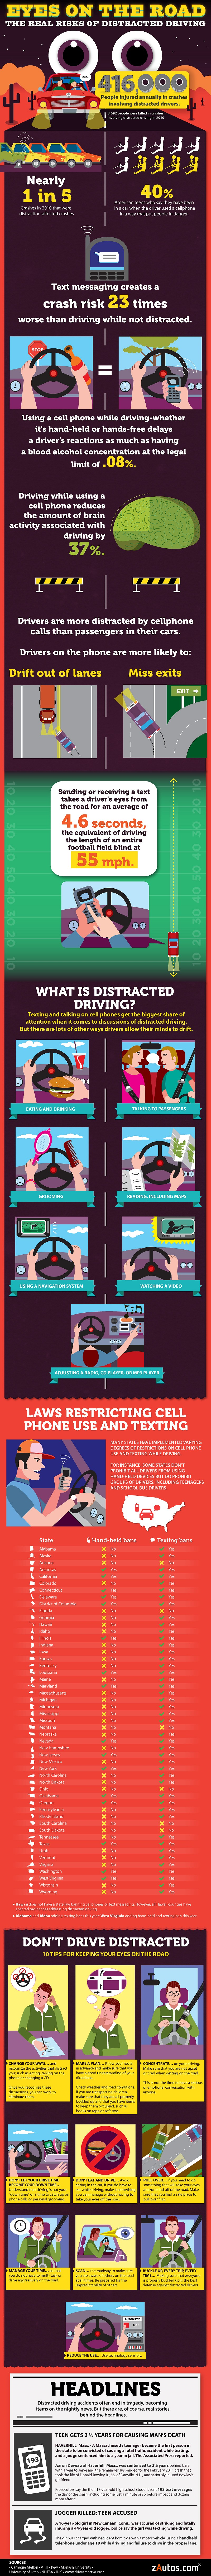 Risks of Distracted Driving-infographic